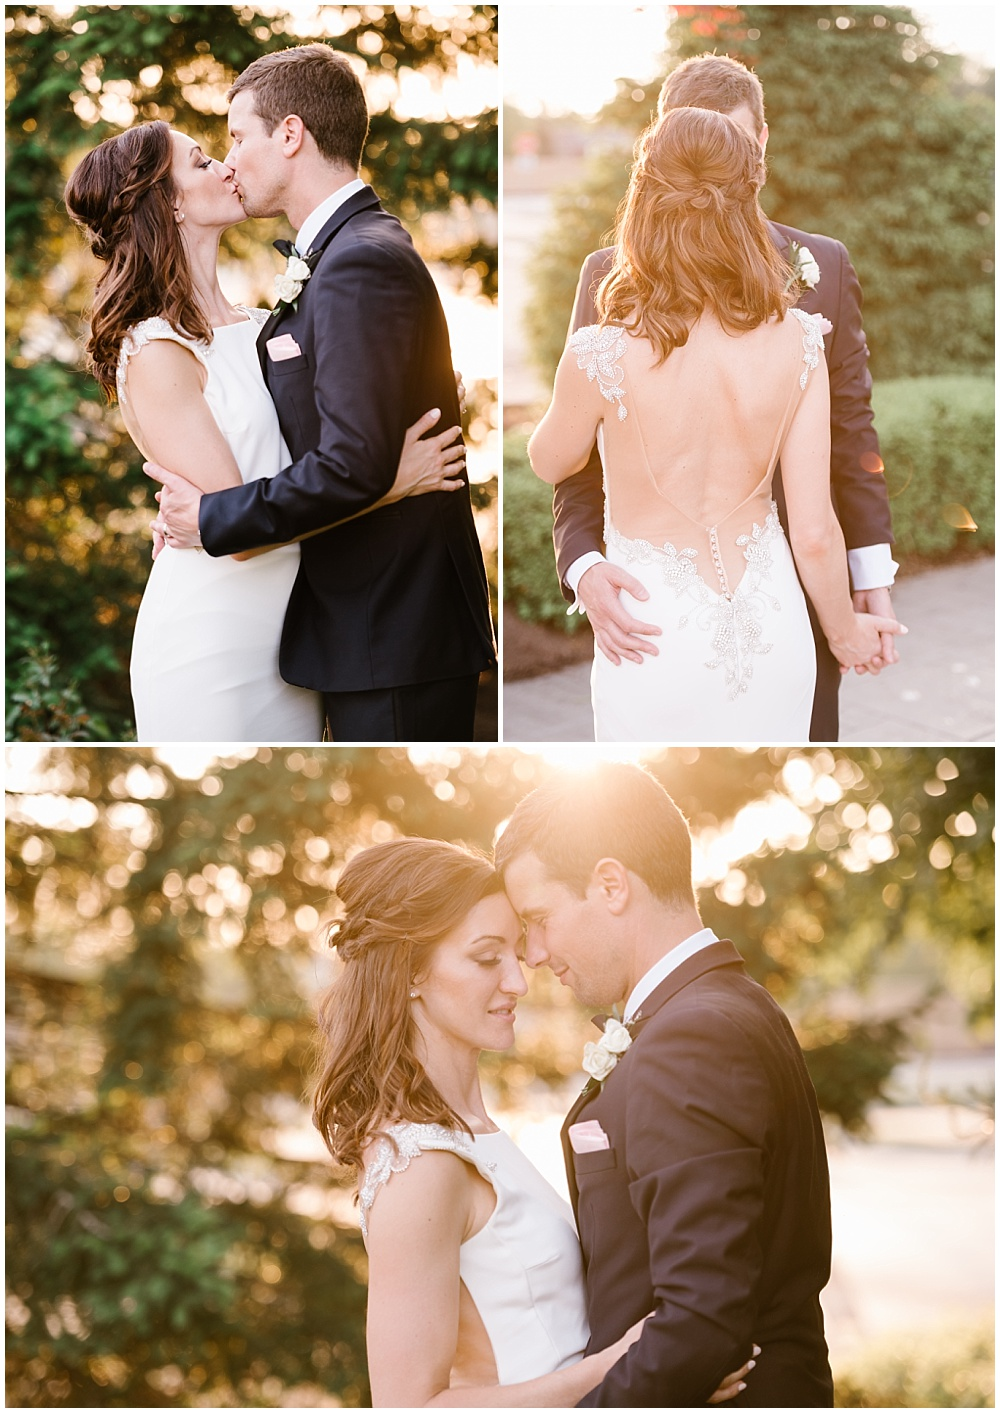 Bride and groom sunset photos. | Spring blush garden-inspired memorial day weekend wedding at the beautiful Ritz Charles Garden Pavilion with Stacy Able Photography and Jessica Dum Wedding Coordination